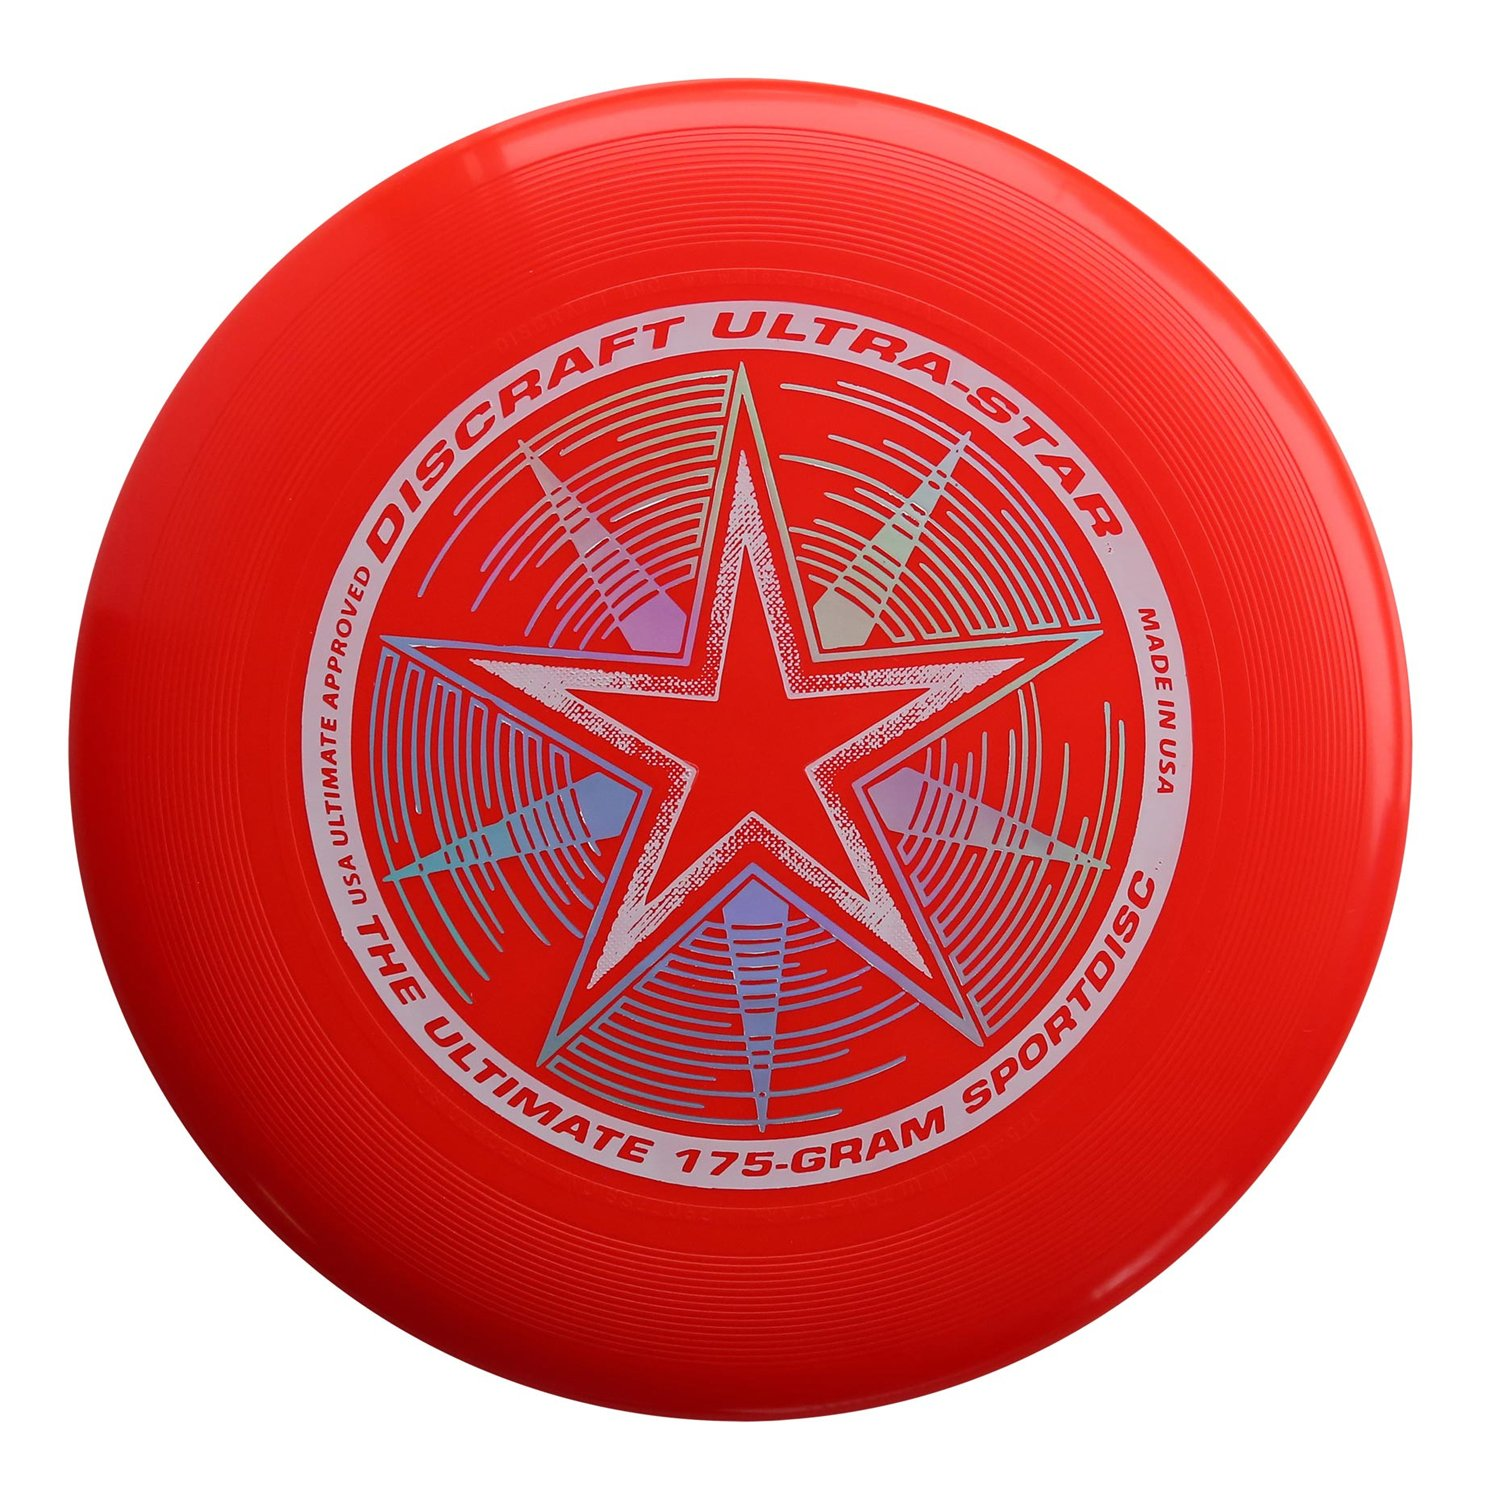 Discraft 175g Ultimate Disc Bundle (3 Discs) Red, White & Pink by Discraft (Image #2)